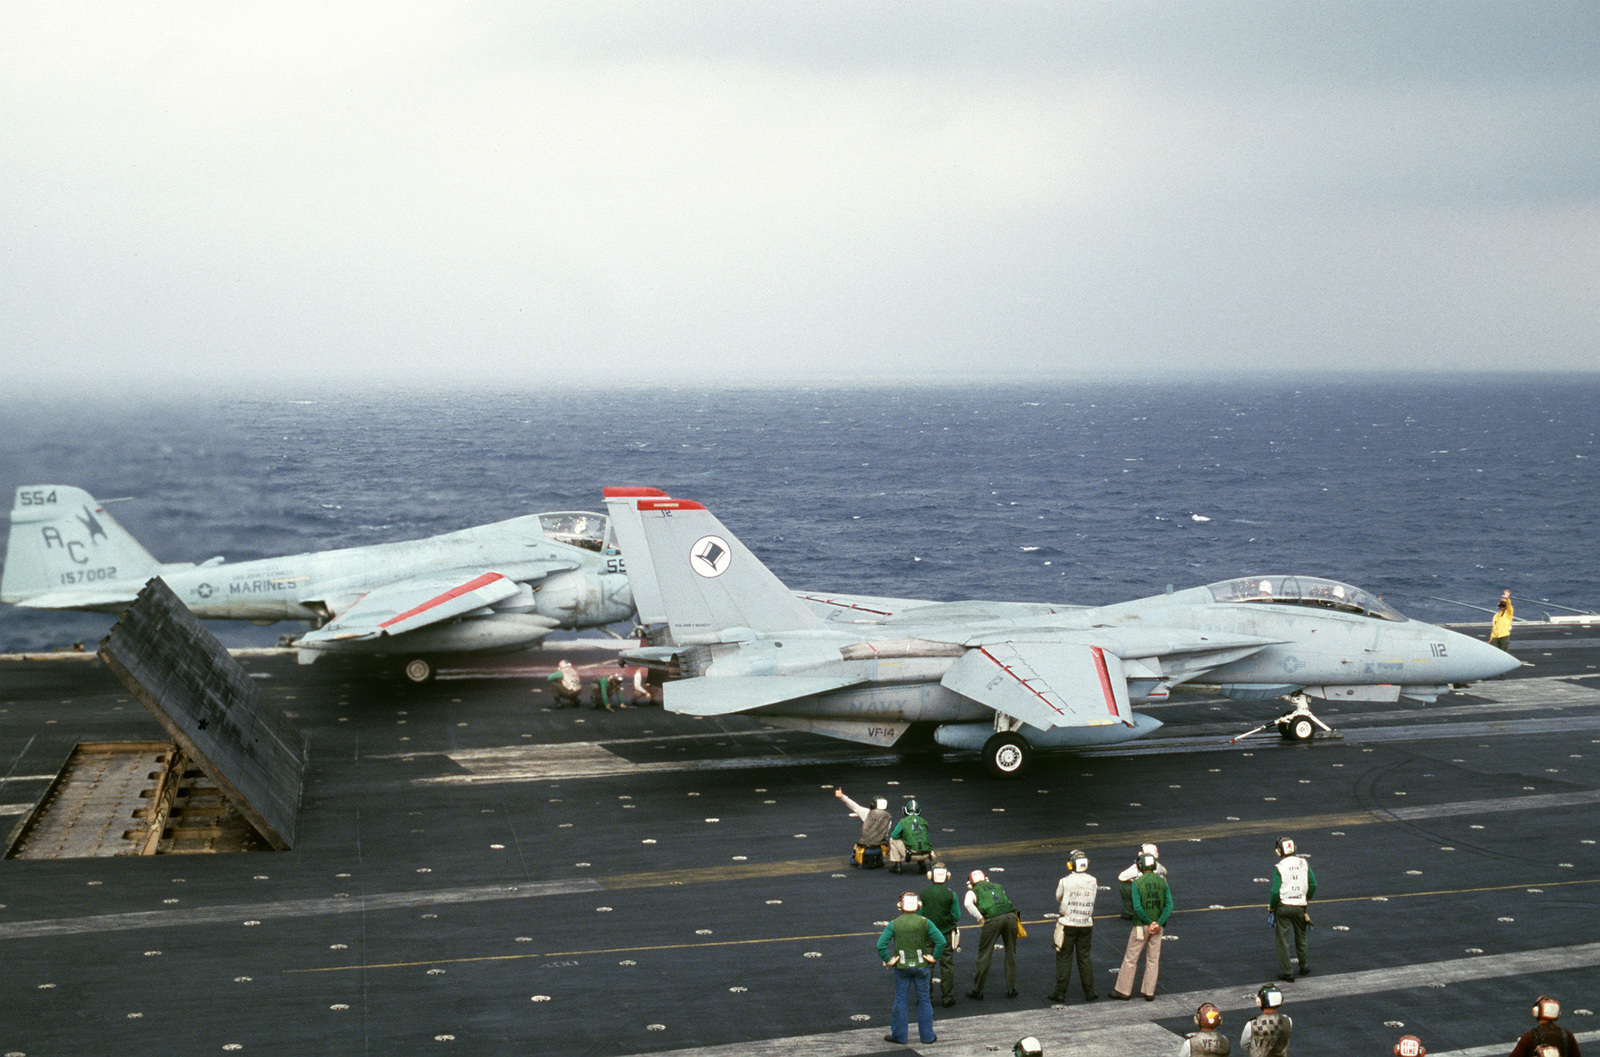 A Fighter Squadron 14 (VF-14) F-14A Tomcat aircraft and an A-6E Intruder aircraft are launched from the flight deck of the Aircraft Carrier USS JOHN F. KENNEDY (CV 67)